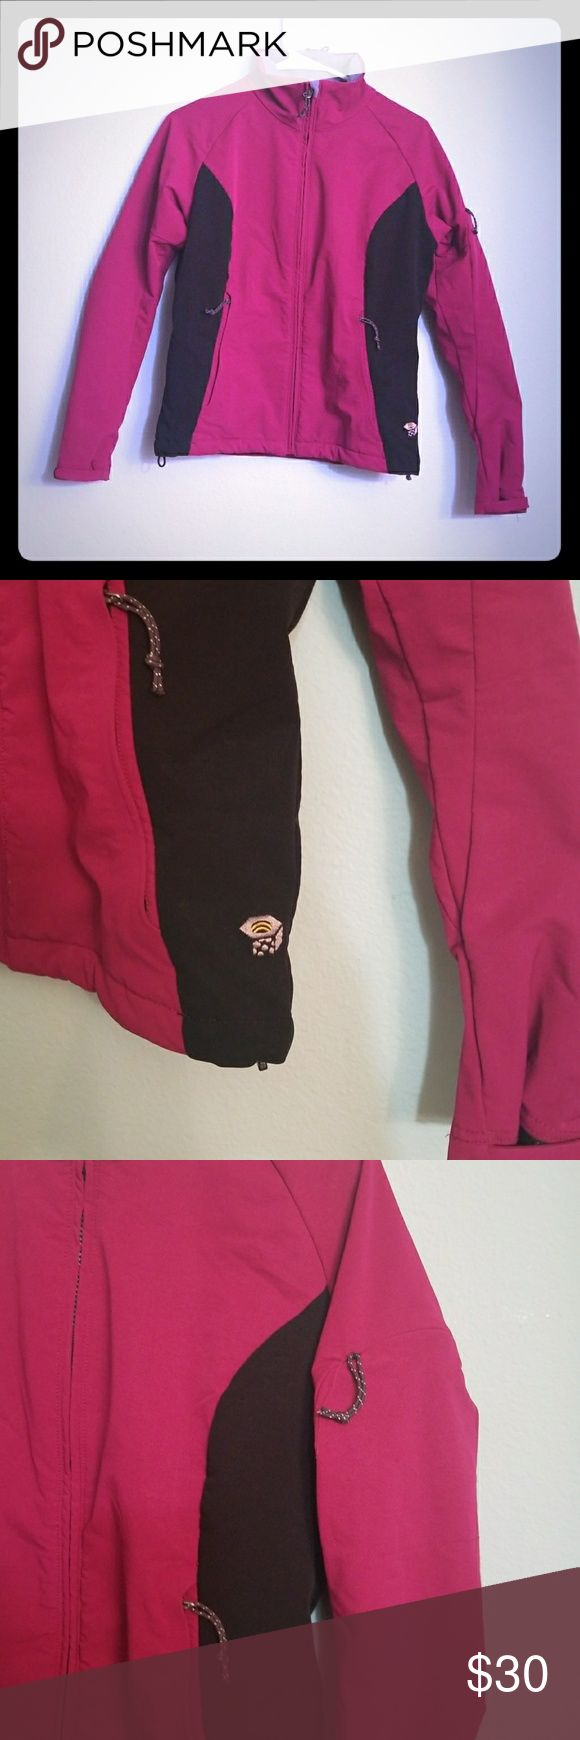 Mountain Hardwear Jacket size Small Awesome pre owned but like new jacket. Perfect everyday jacket light weight but super warm. Fleece lined with two front pockets and one arm pocket. Also it's a dark maroon color the pictures make it a little brighter than it is. No rips tears or stains comes from pet free smoke free home. Mountain Hardwear Jackets & Coats